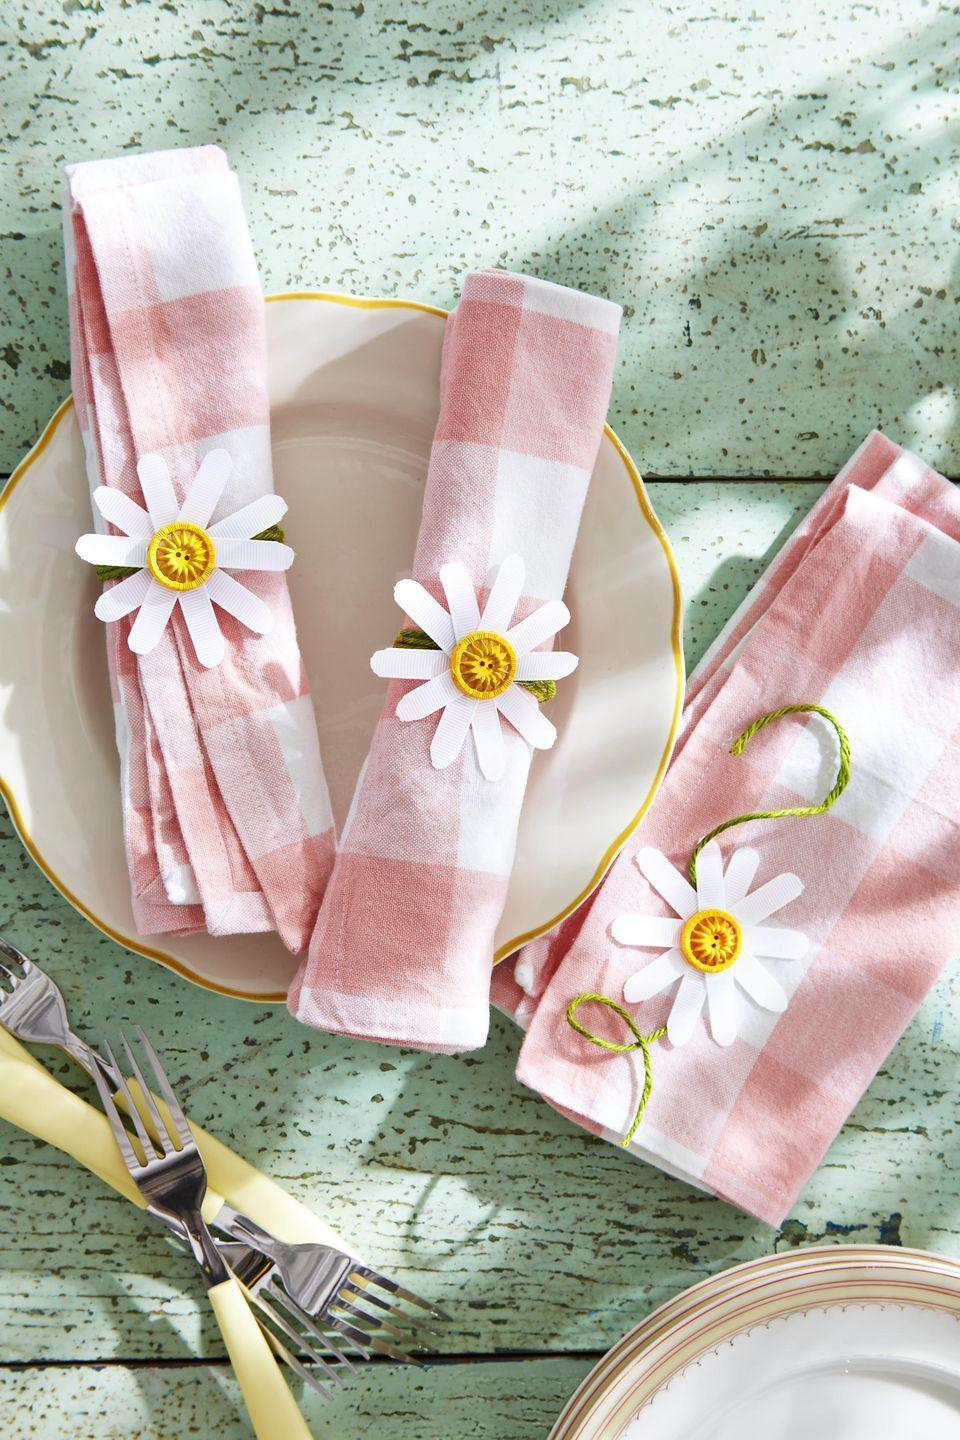 "<p>Created from grosgrain ribbon and vintage or new buttons, these sweet DIY napkin rings will brighten up any table</p><p><strong>To make:</strong> For each napkin ring, cut 3/8-inch-wide white grosgrain ribbon into five 3-inch-long pieces; round ends. Glue one piece on top of the next, offsetting as you go to create a flower shape. Glue a yellow button in center and a length of green twine to back for tying.</p><p><a class=""link rapid-noclick-resp"" href=""https://www.amazon.com/VATIN-Solid-Grosgrain-Ribbon-50-Yard/dp/B072F2MXW2/ref=sr_1_3?tag=syn-yahoo-20&ascsubtag=%5Bartid%7C10050.g.1652%5Bsrc%7Cyahoo-us"" rel=""nofollow noopener"" target=""_blank"" data-ylk=""slk:SHOP RIBBON"">SHOP RIBBON</a></p>"